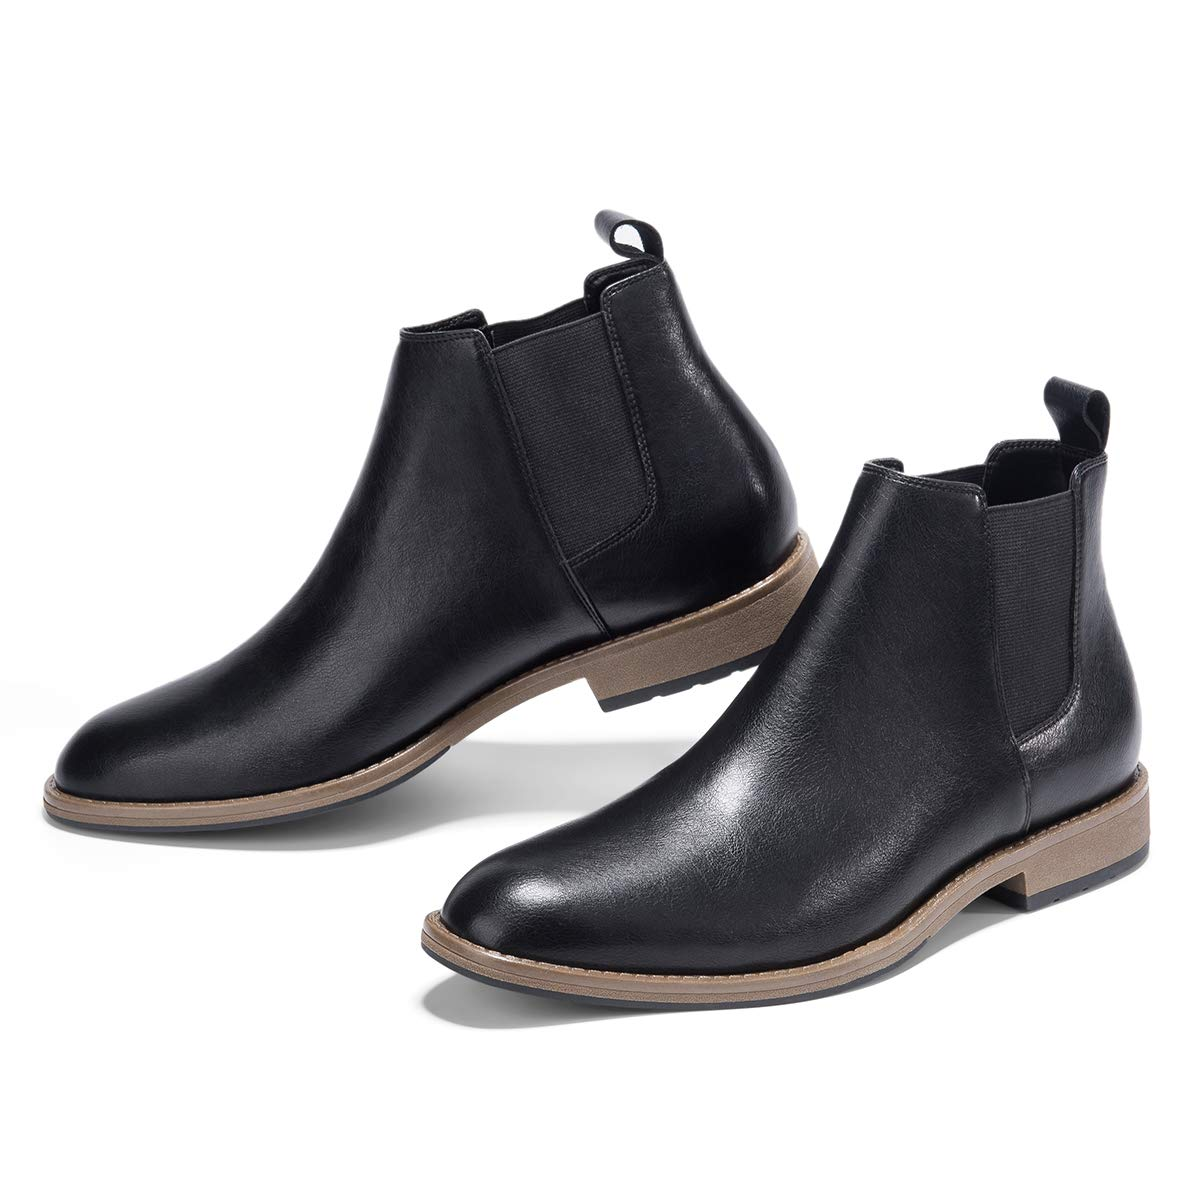 GM GOLAIMAN Men's Chelsea Boots Slip On - Dress Boot Fashion Work Office Prom Wedding Gifts Botas Invierno Hombre Black 9.5 by GM GOLAIMAN